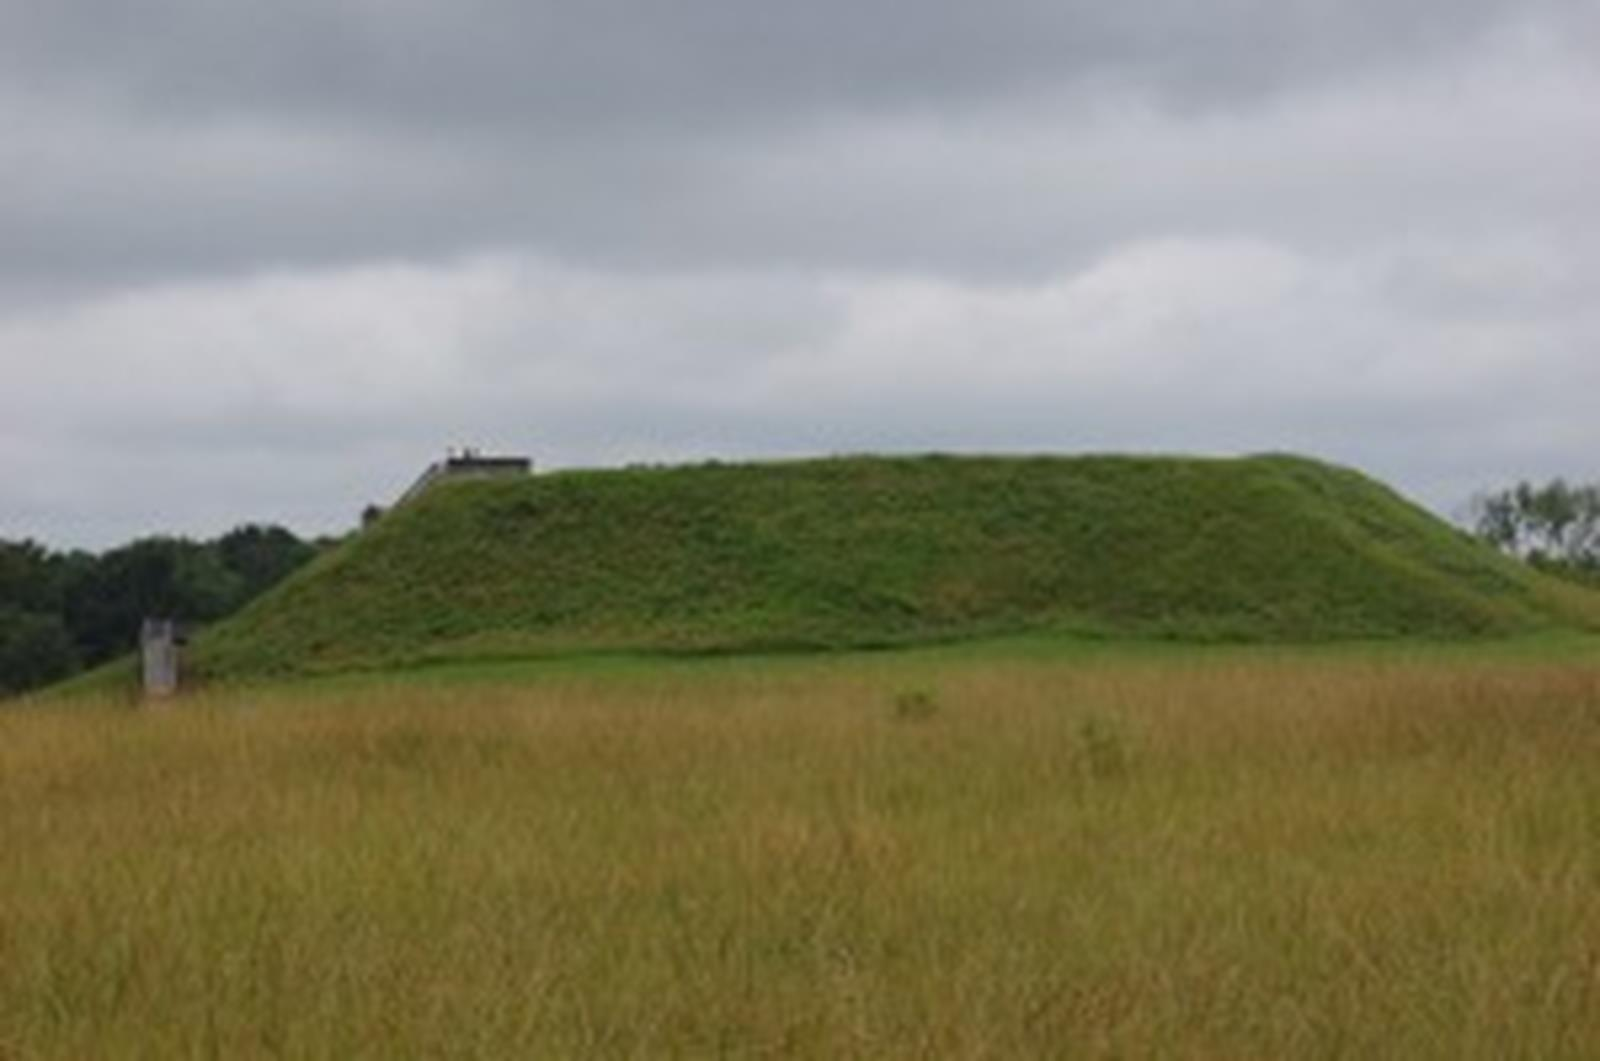 The Great Temples Mound is part of the Ocmulgee National Monument